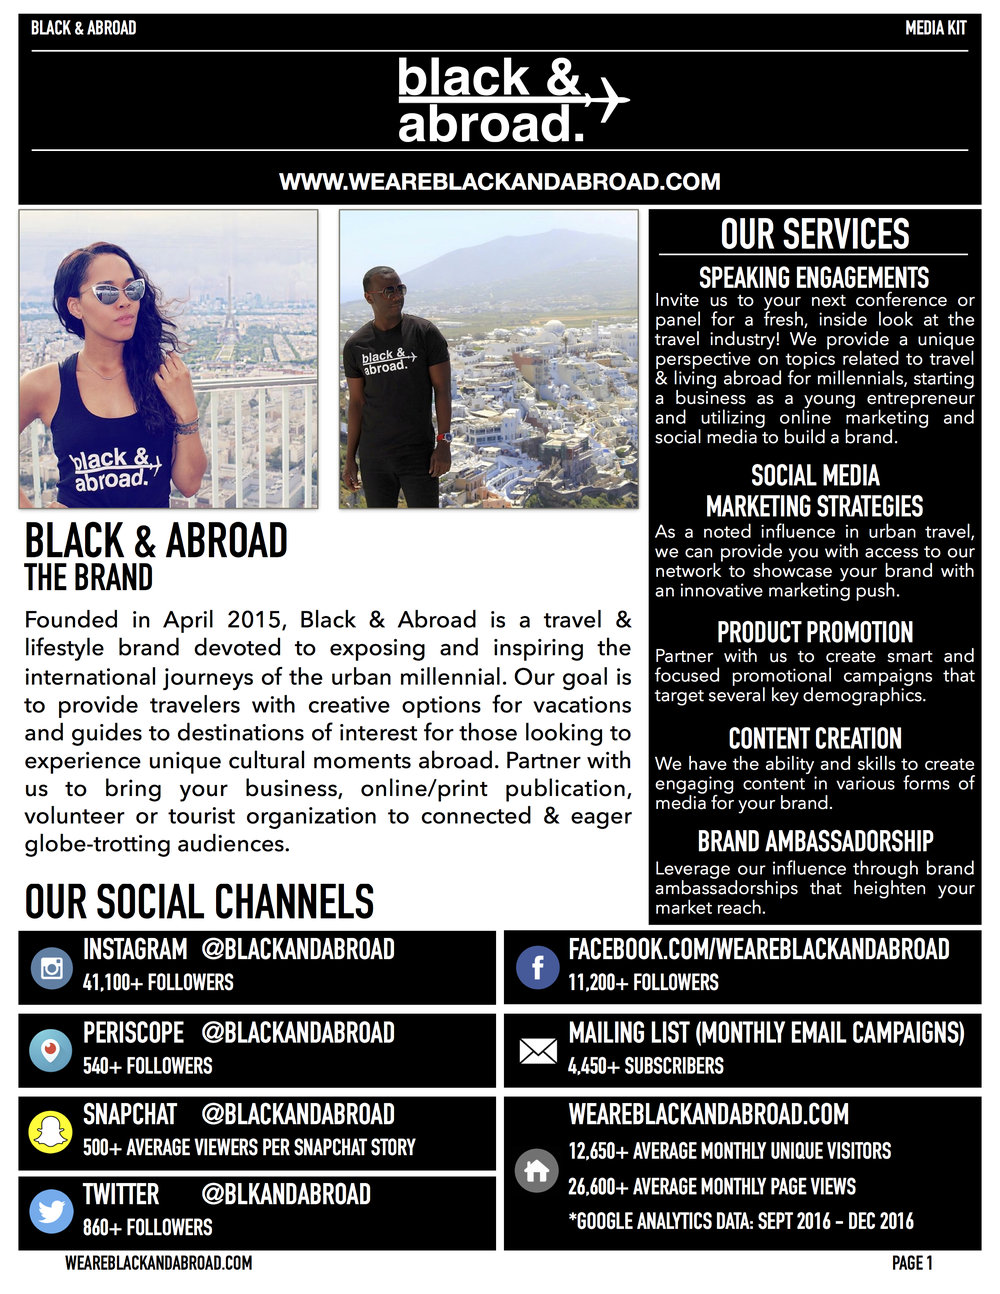 Black and Abroad Media Kit JAN 2016.jpg